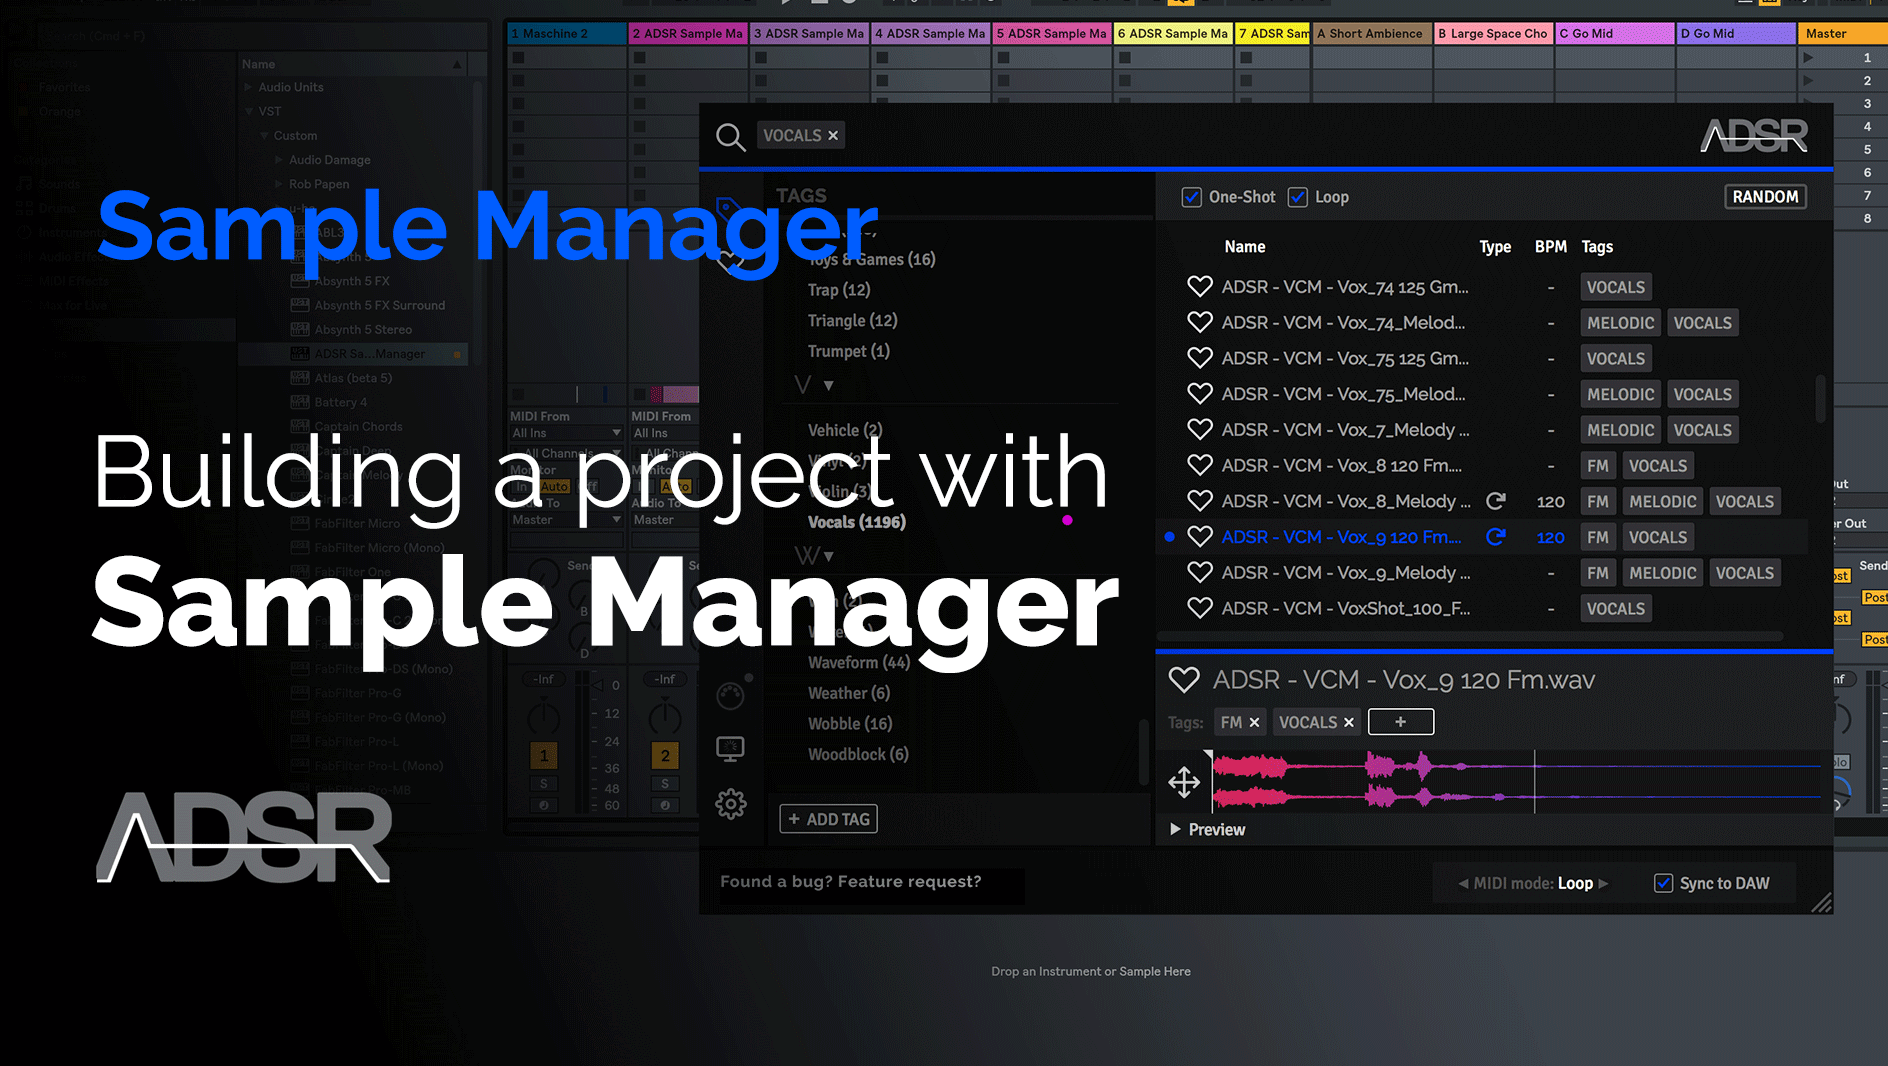 Using samples to build a project in ADSR Sample Manager